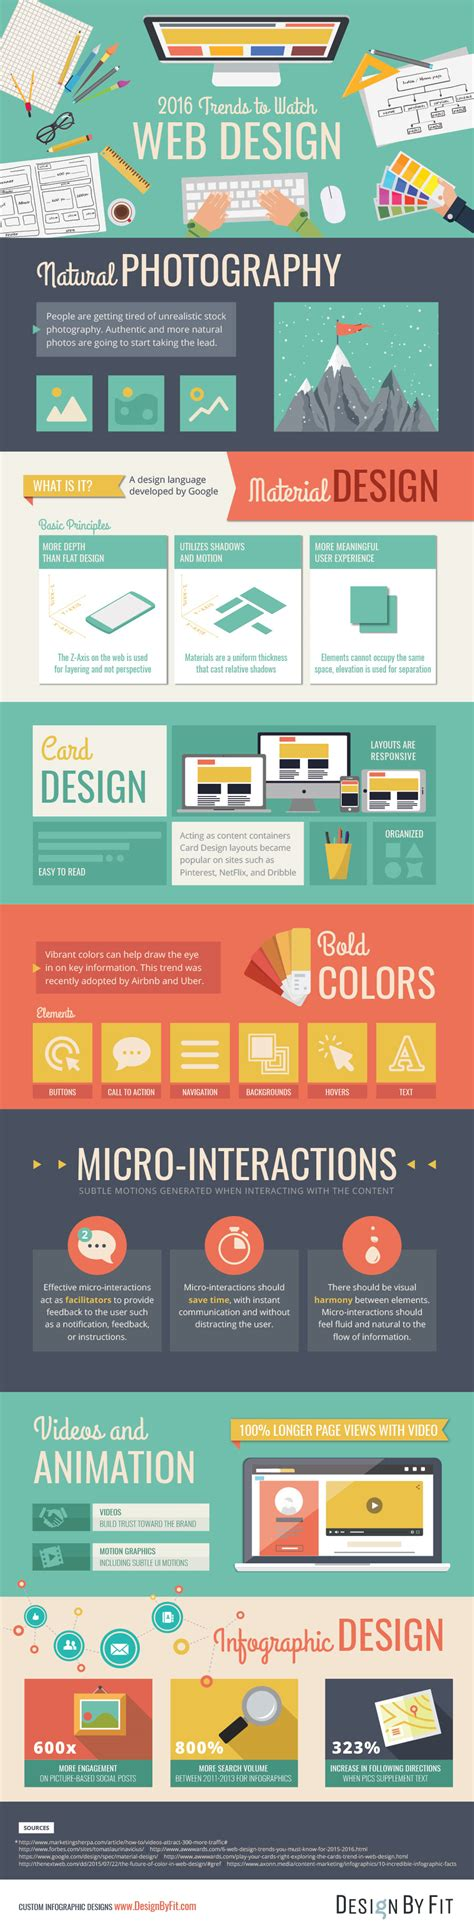 web layout trends 2016 web design trends to watch infographic design by fit